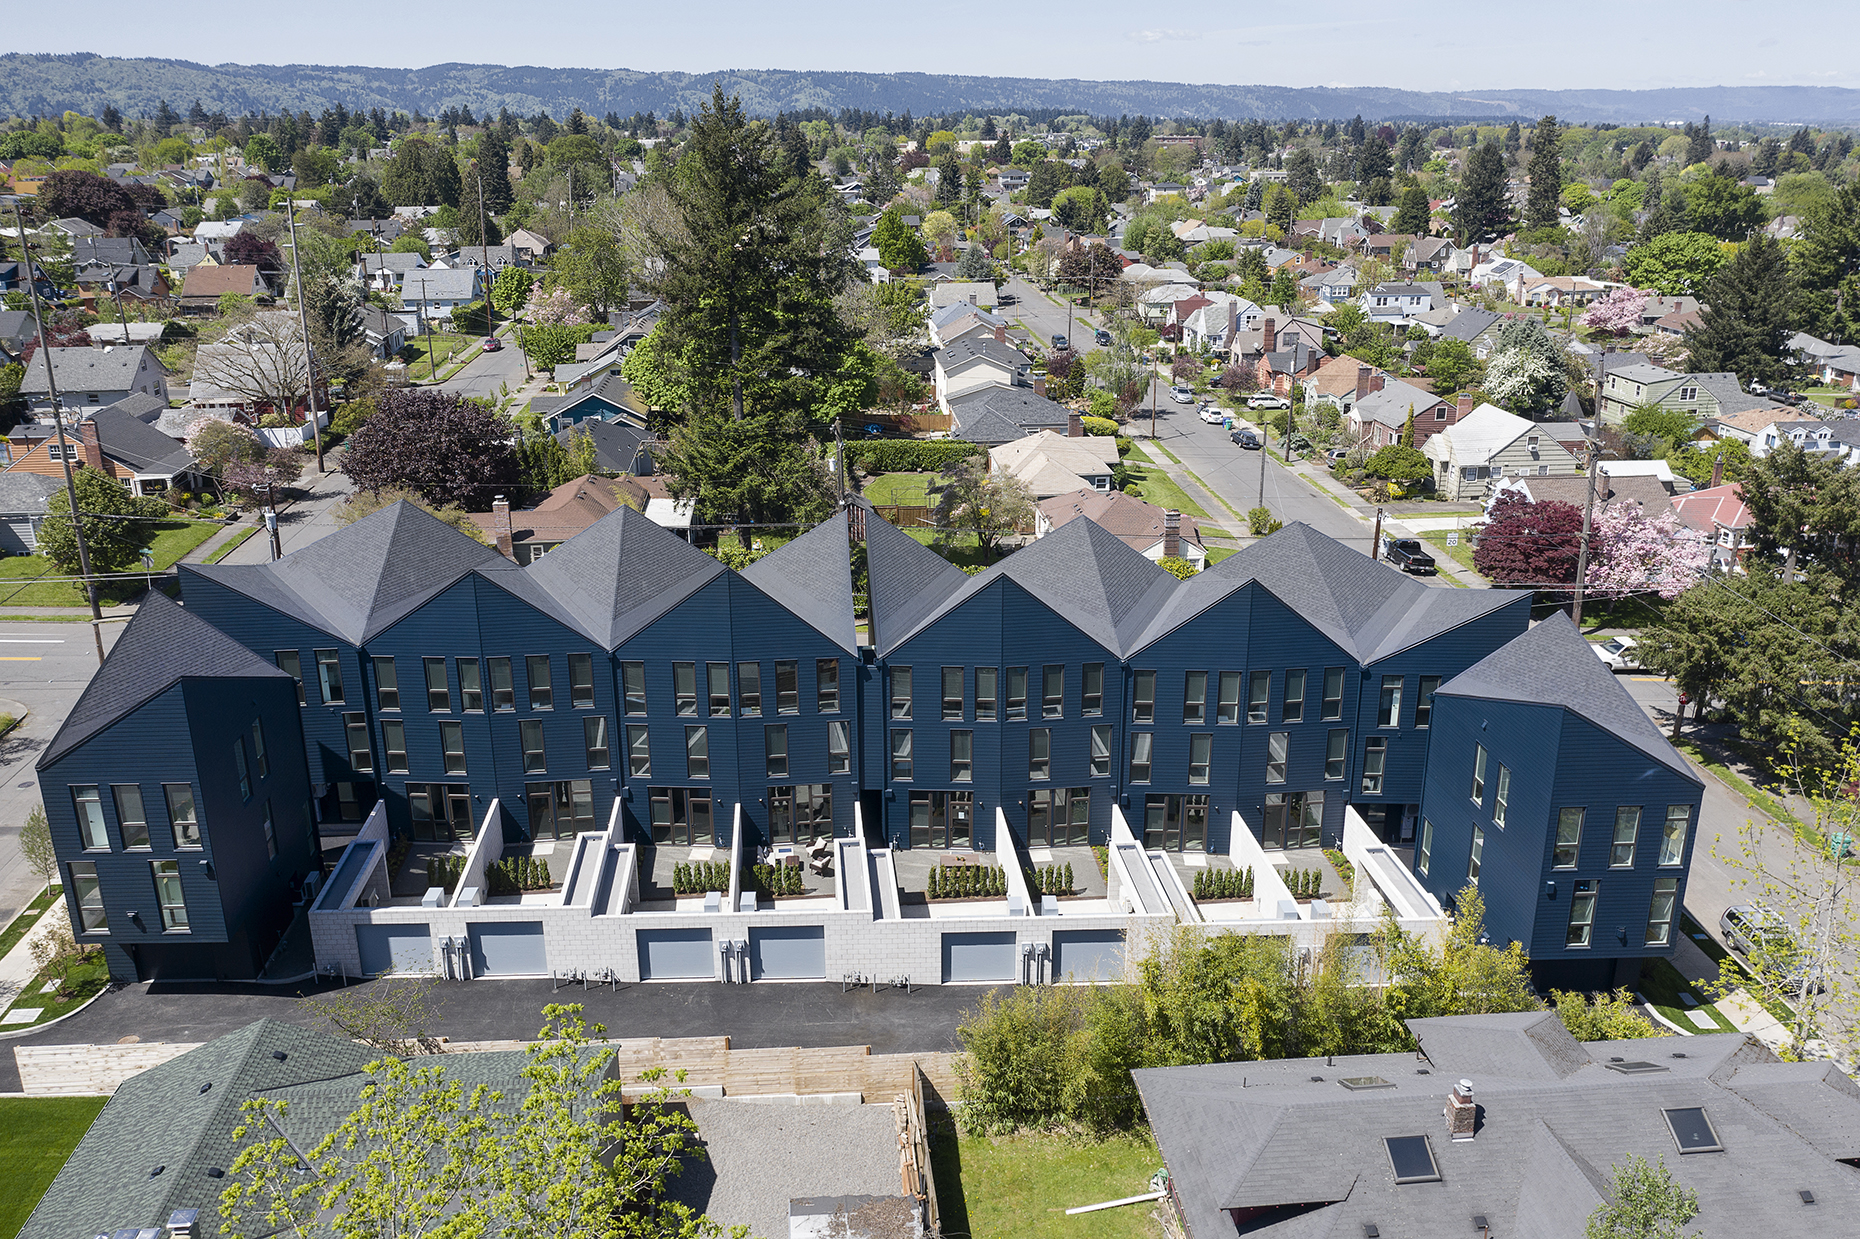 Aerial view of C-shaped townhouse complex with a roofline that peaks and dips.